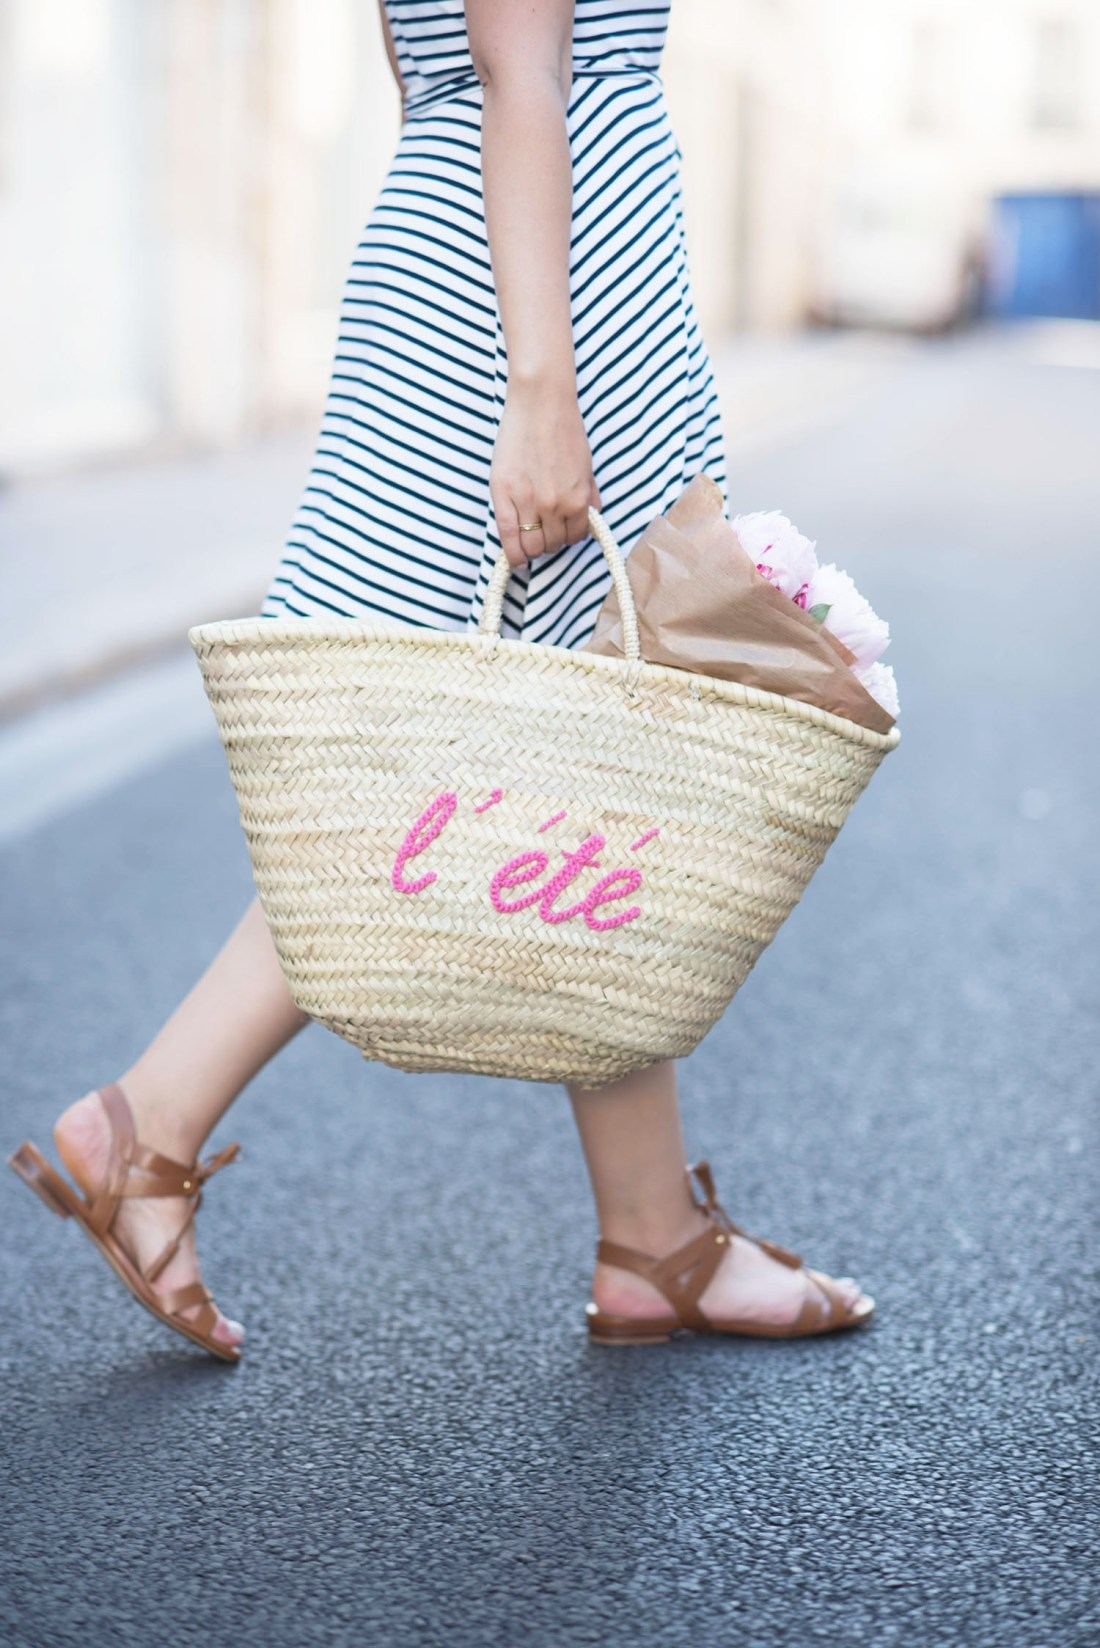 Outfit details on fashion blogger Cee Fardoe of Coco & Vera, including Sezane gladiator sandals and a straw tote